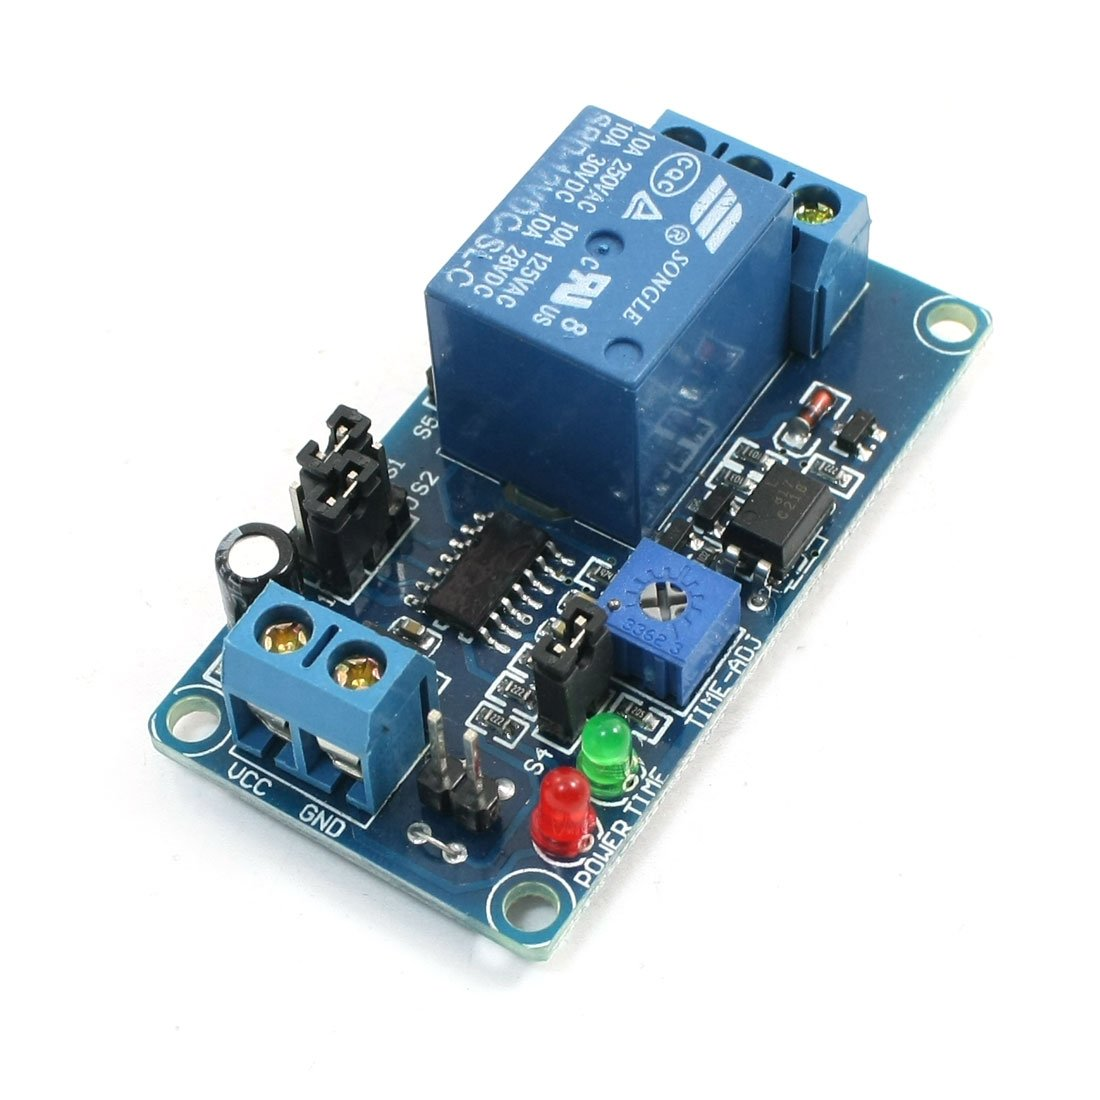 Amazoncom Uxcell Delay Relay Module Home Improvement - Normally open timed closed relay